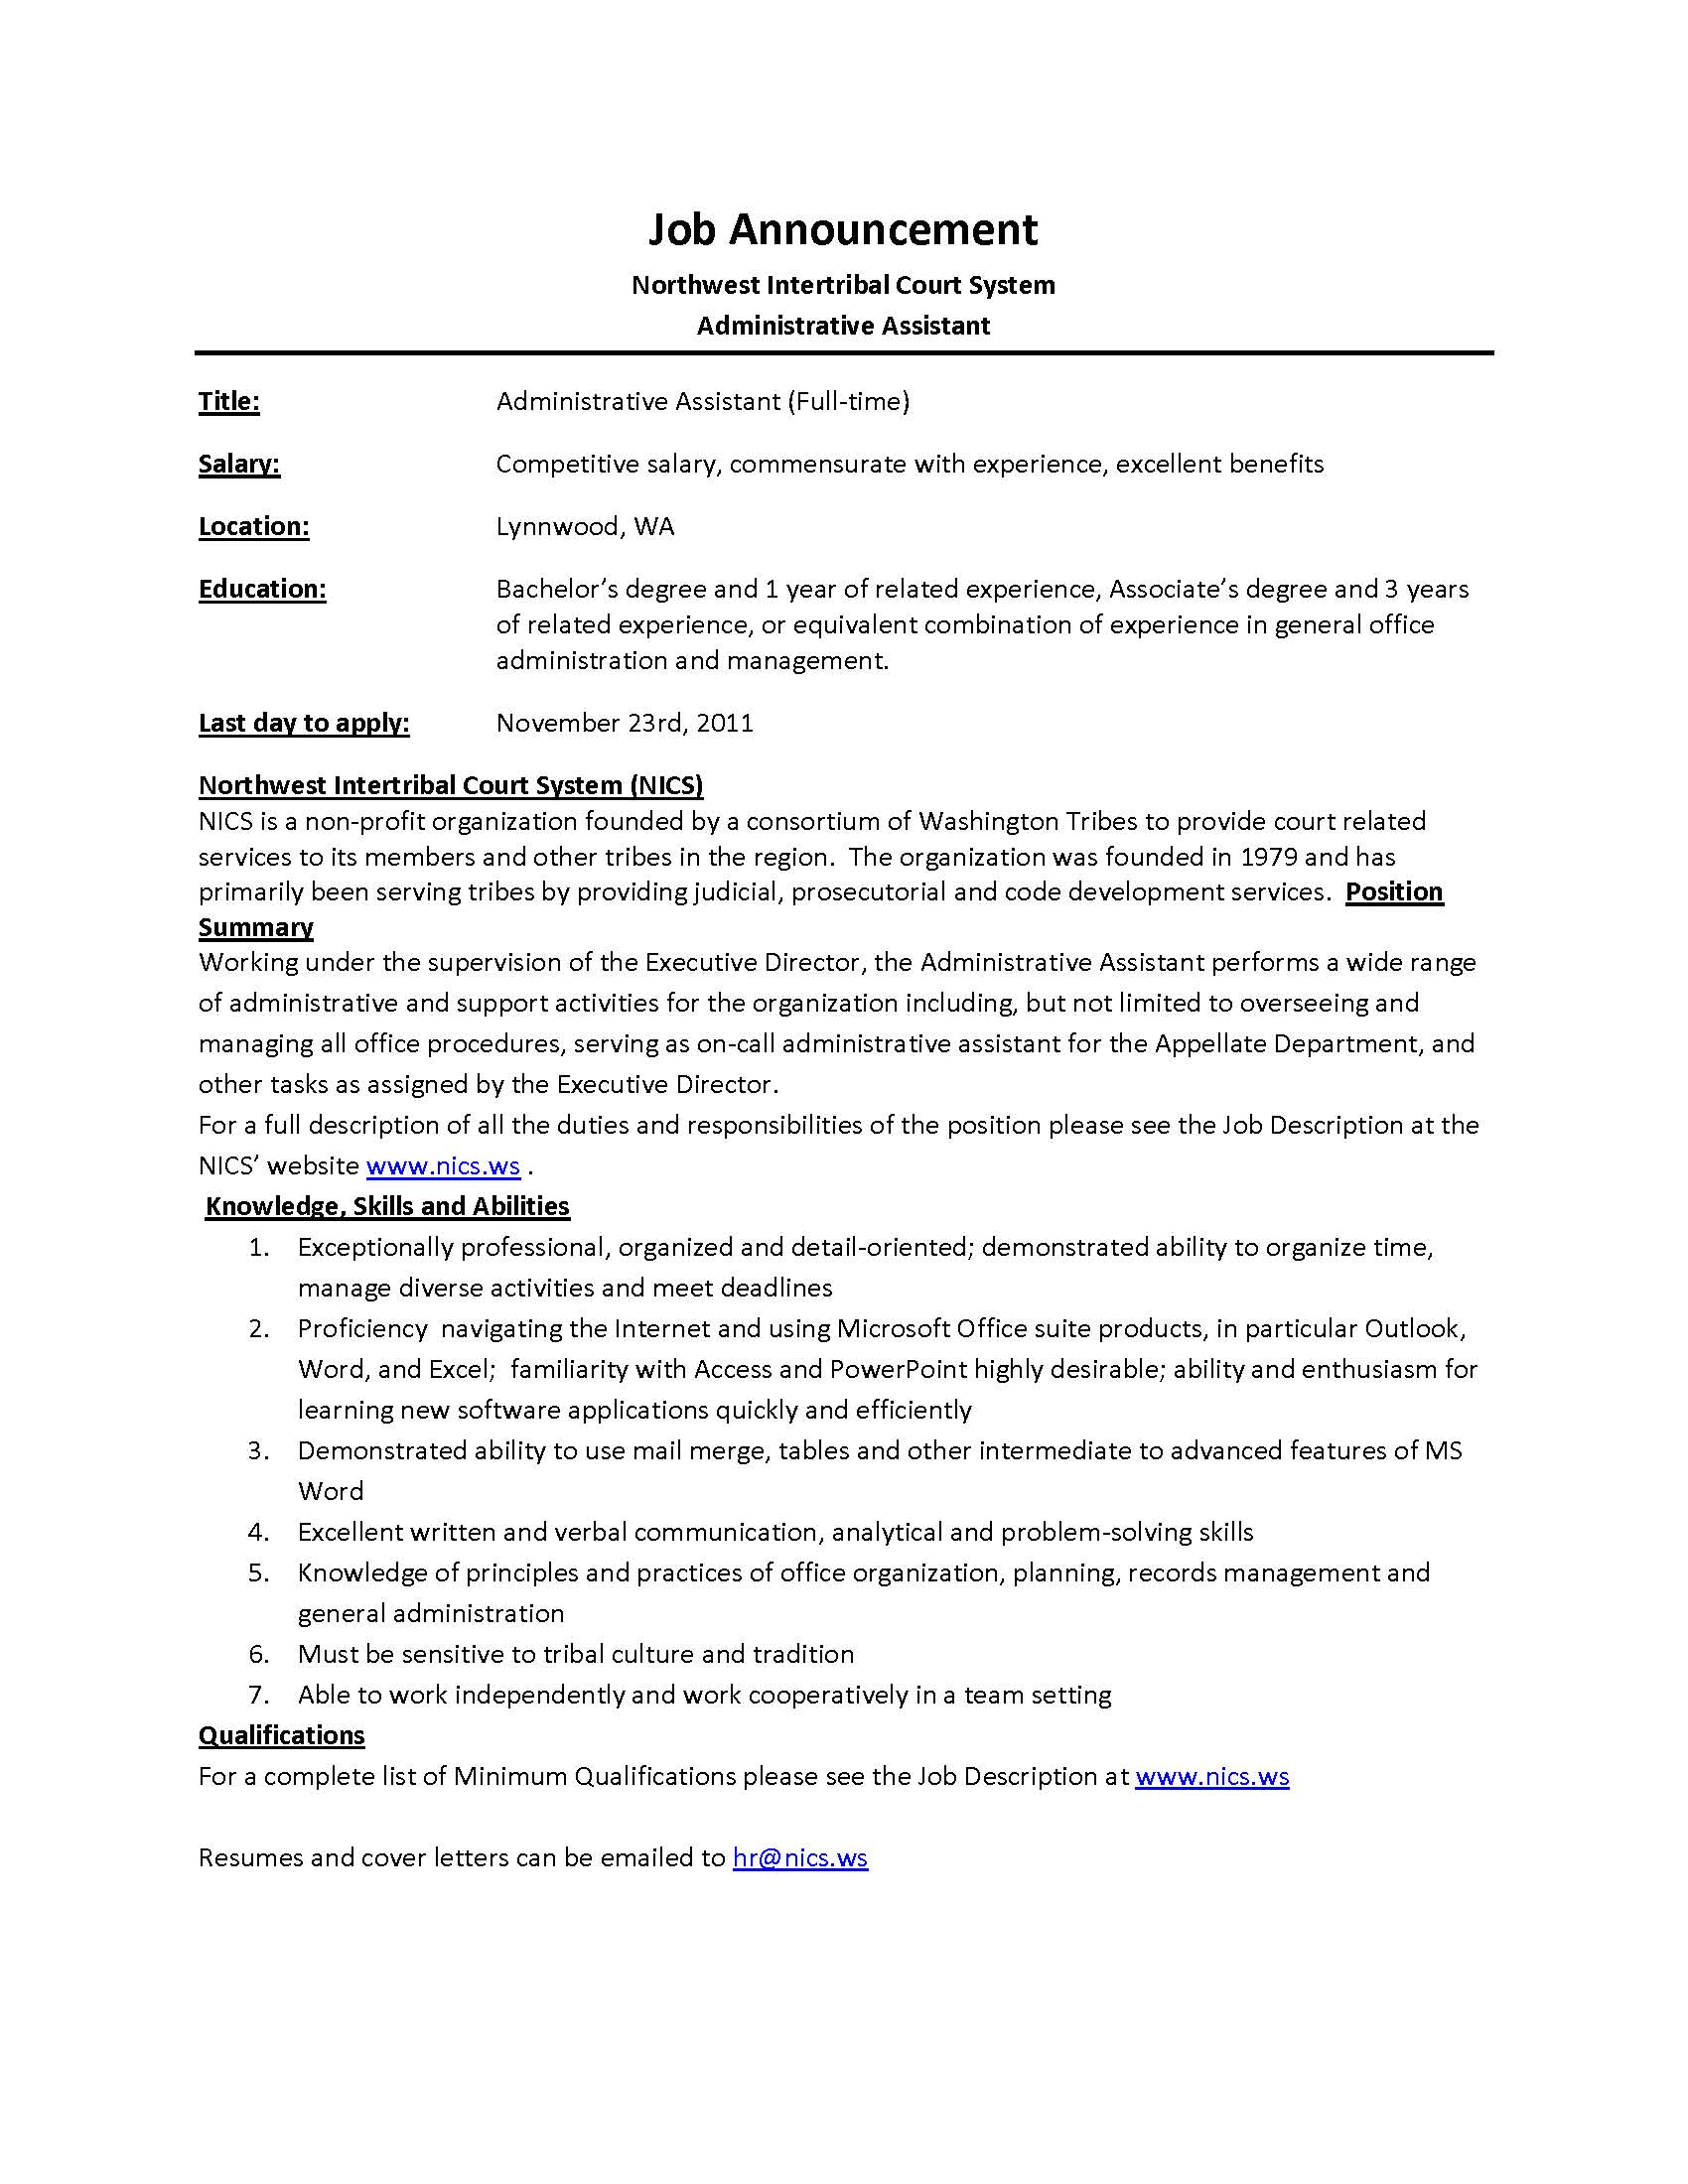 Administrative assistant job description office sample for Creating job descriptions template